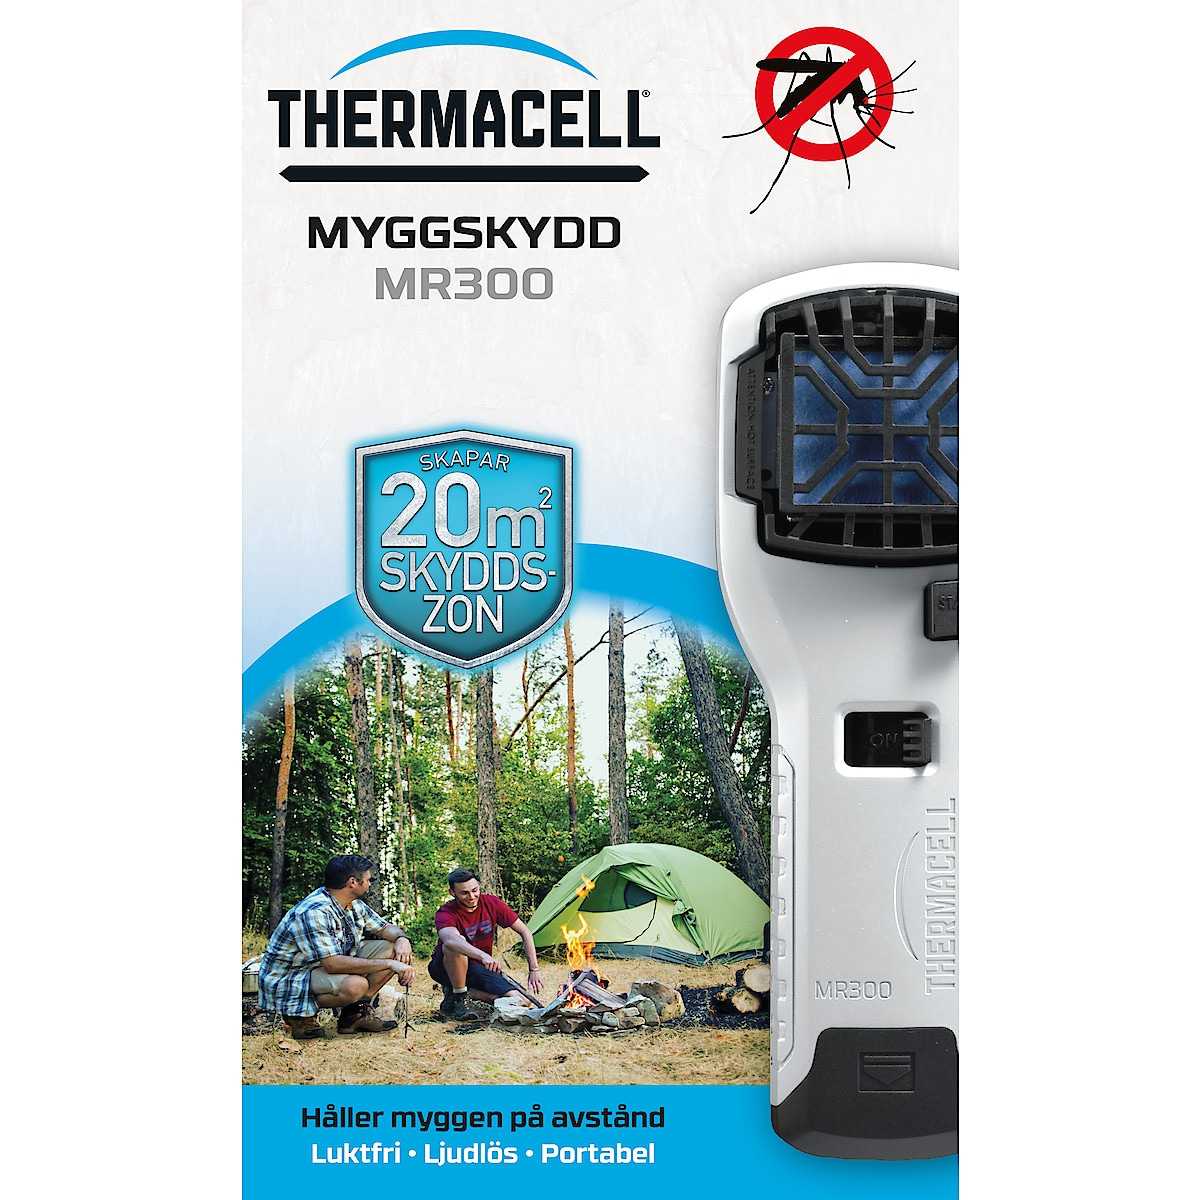 Myggskydd portabelt Thermacell MR300